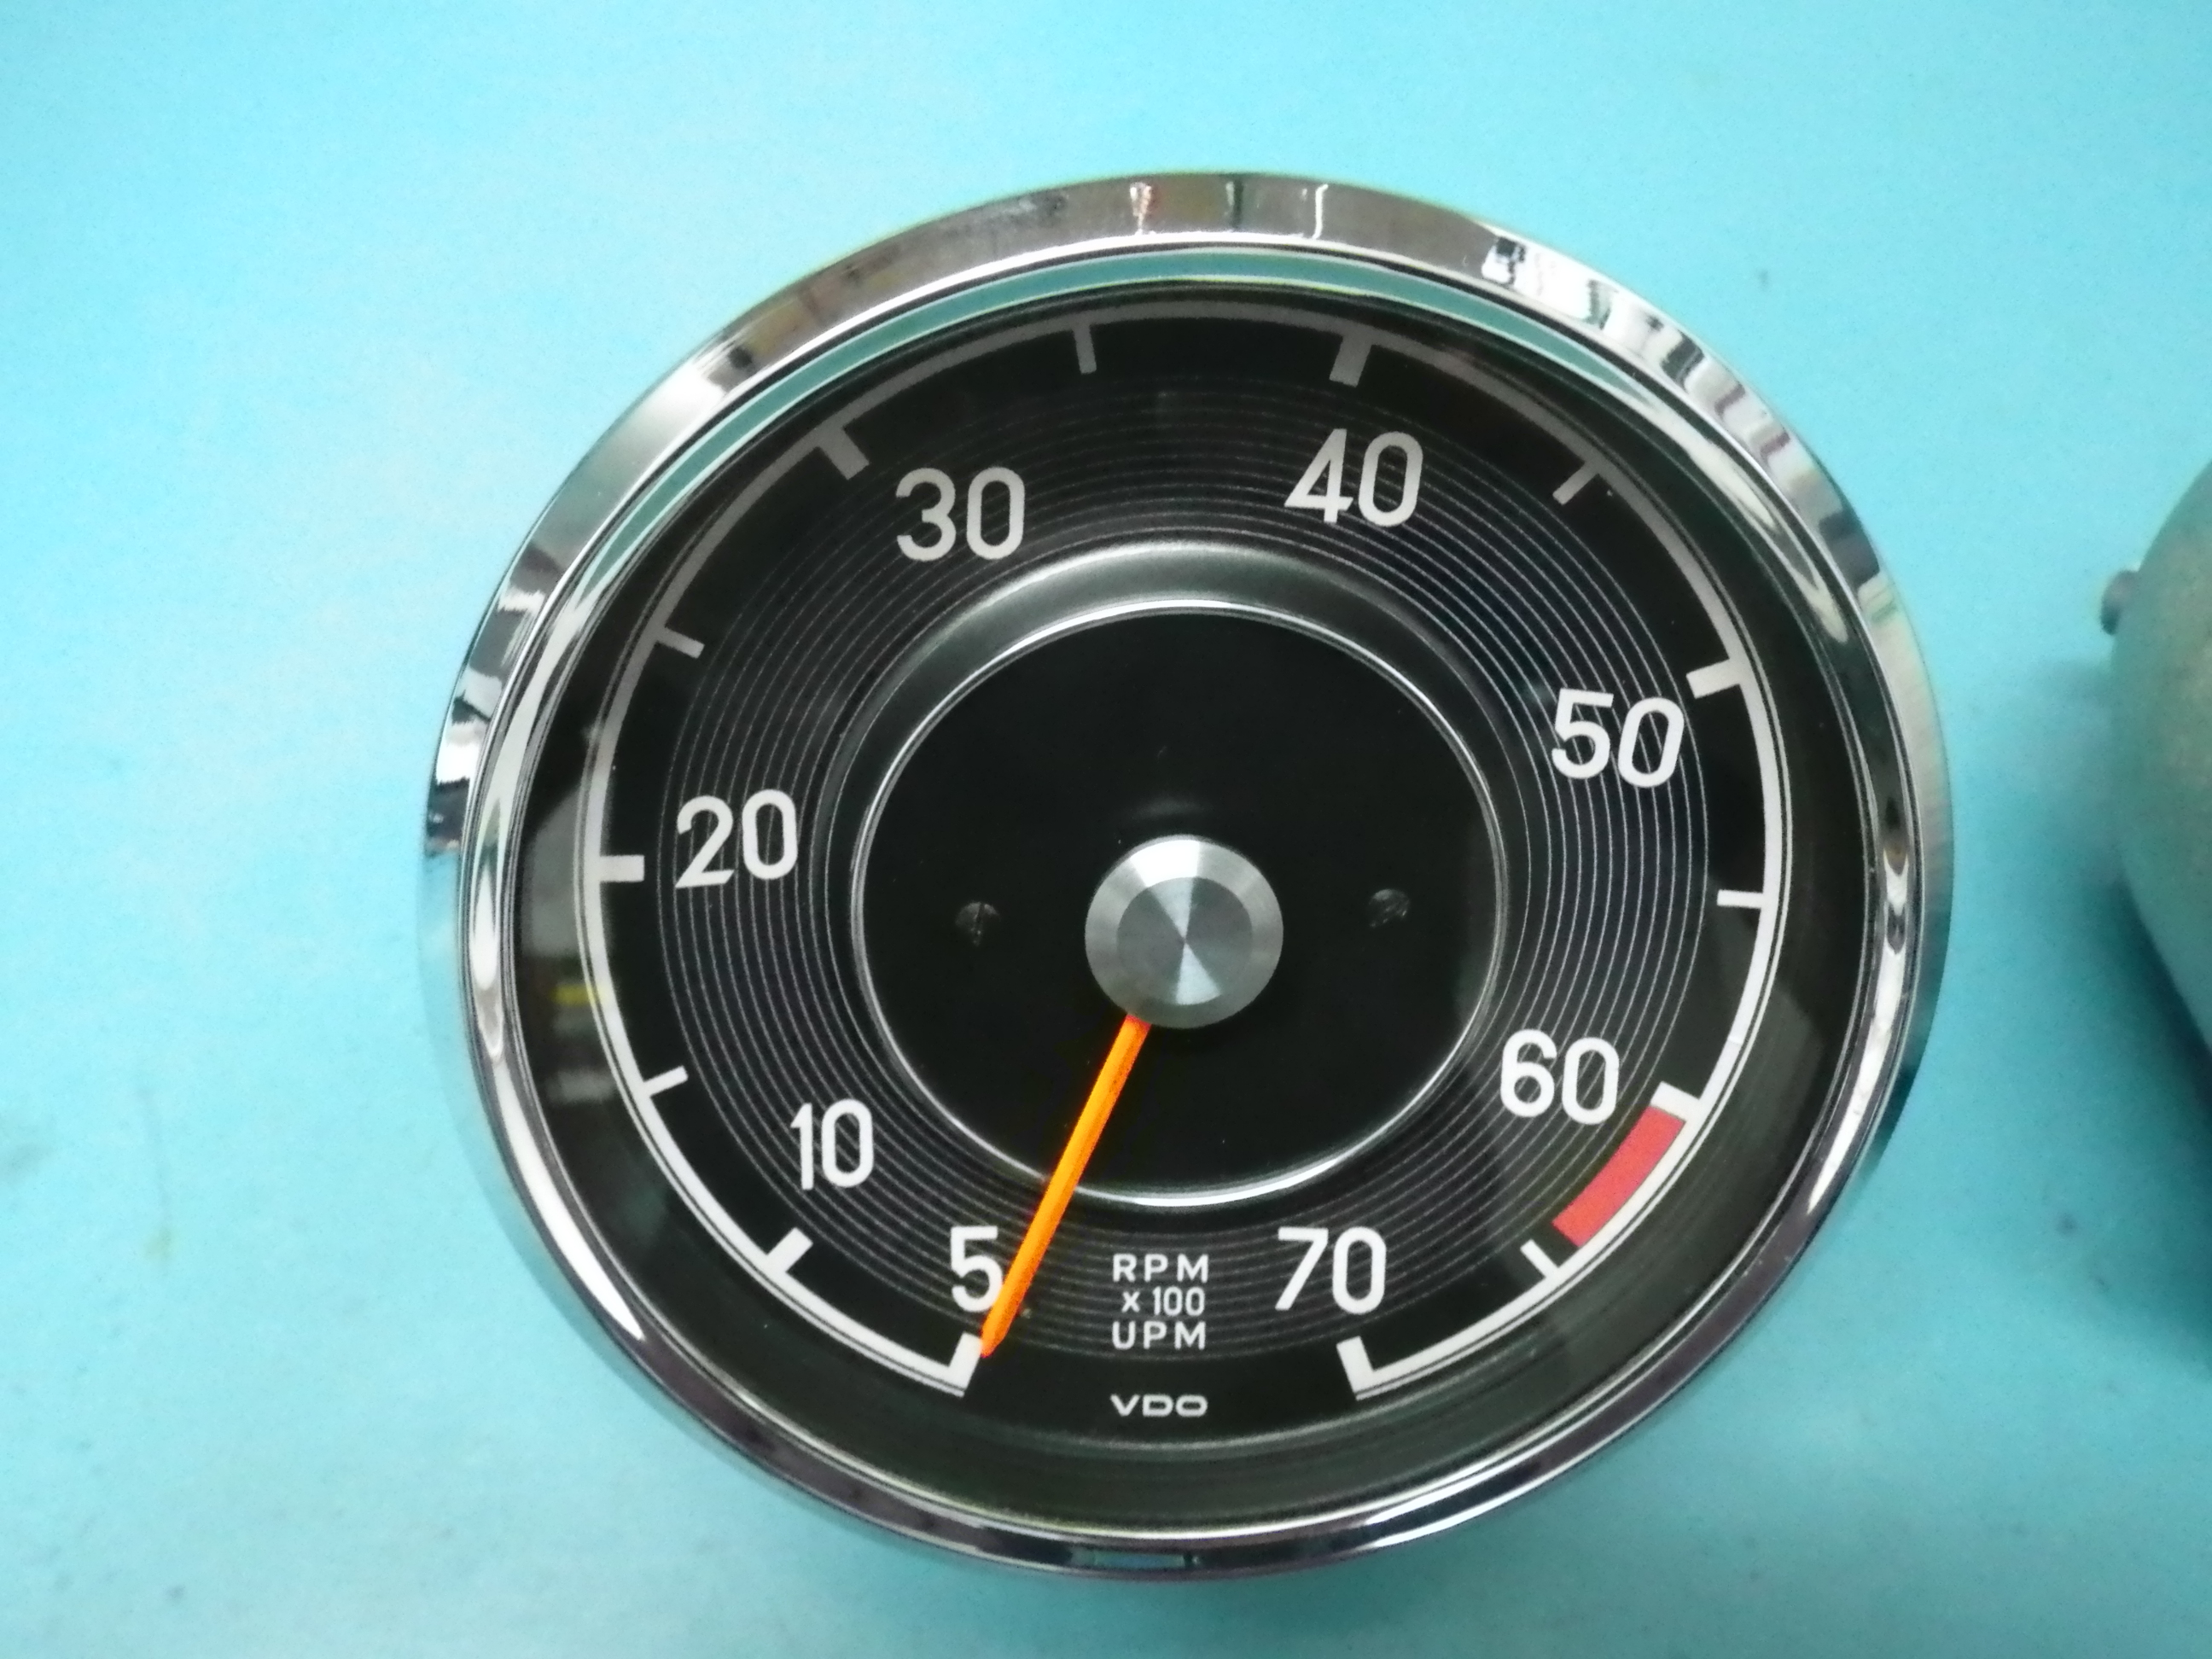 Vdo Gauges Tachometer Smiths Chronometric Marine Speedometer Speedometers Gps Speed Sensor Mercedes Gull Wing